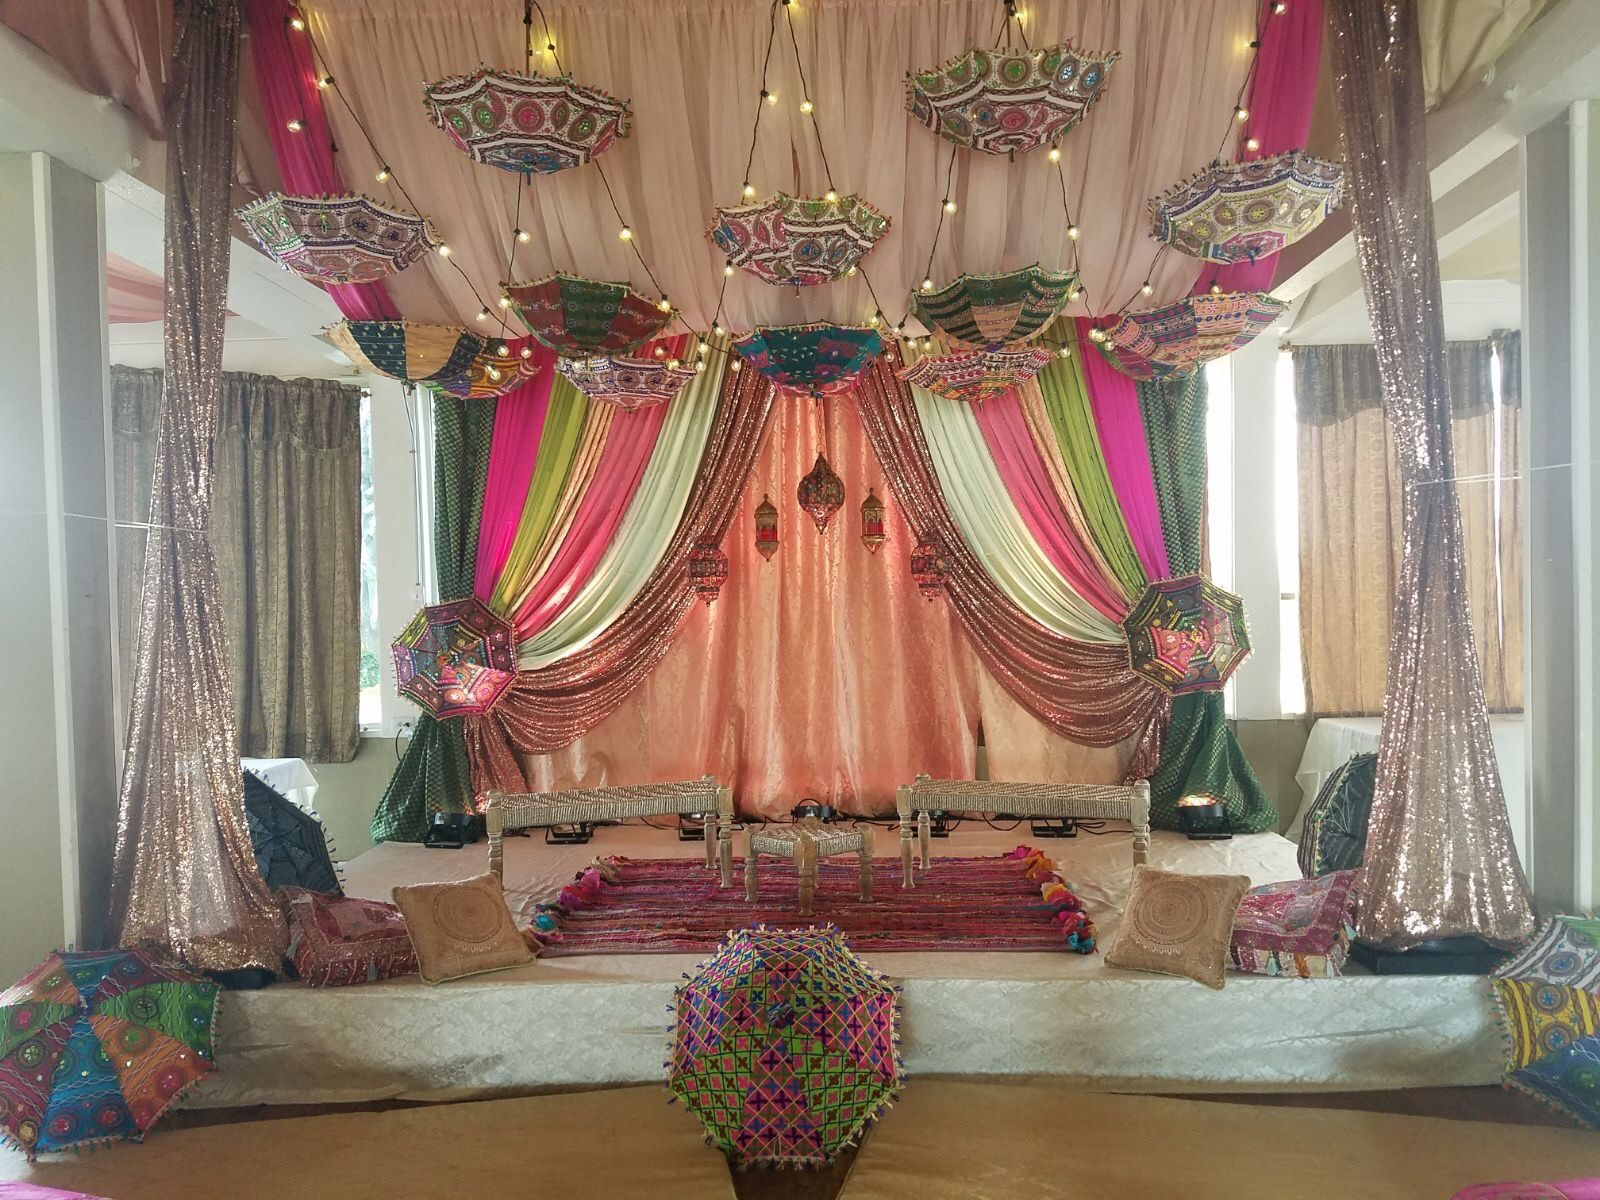 Sangeet Event Decorations Indian Inspired Backdrop Hanging